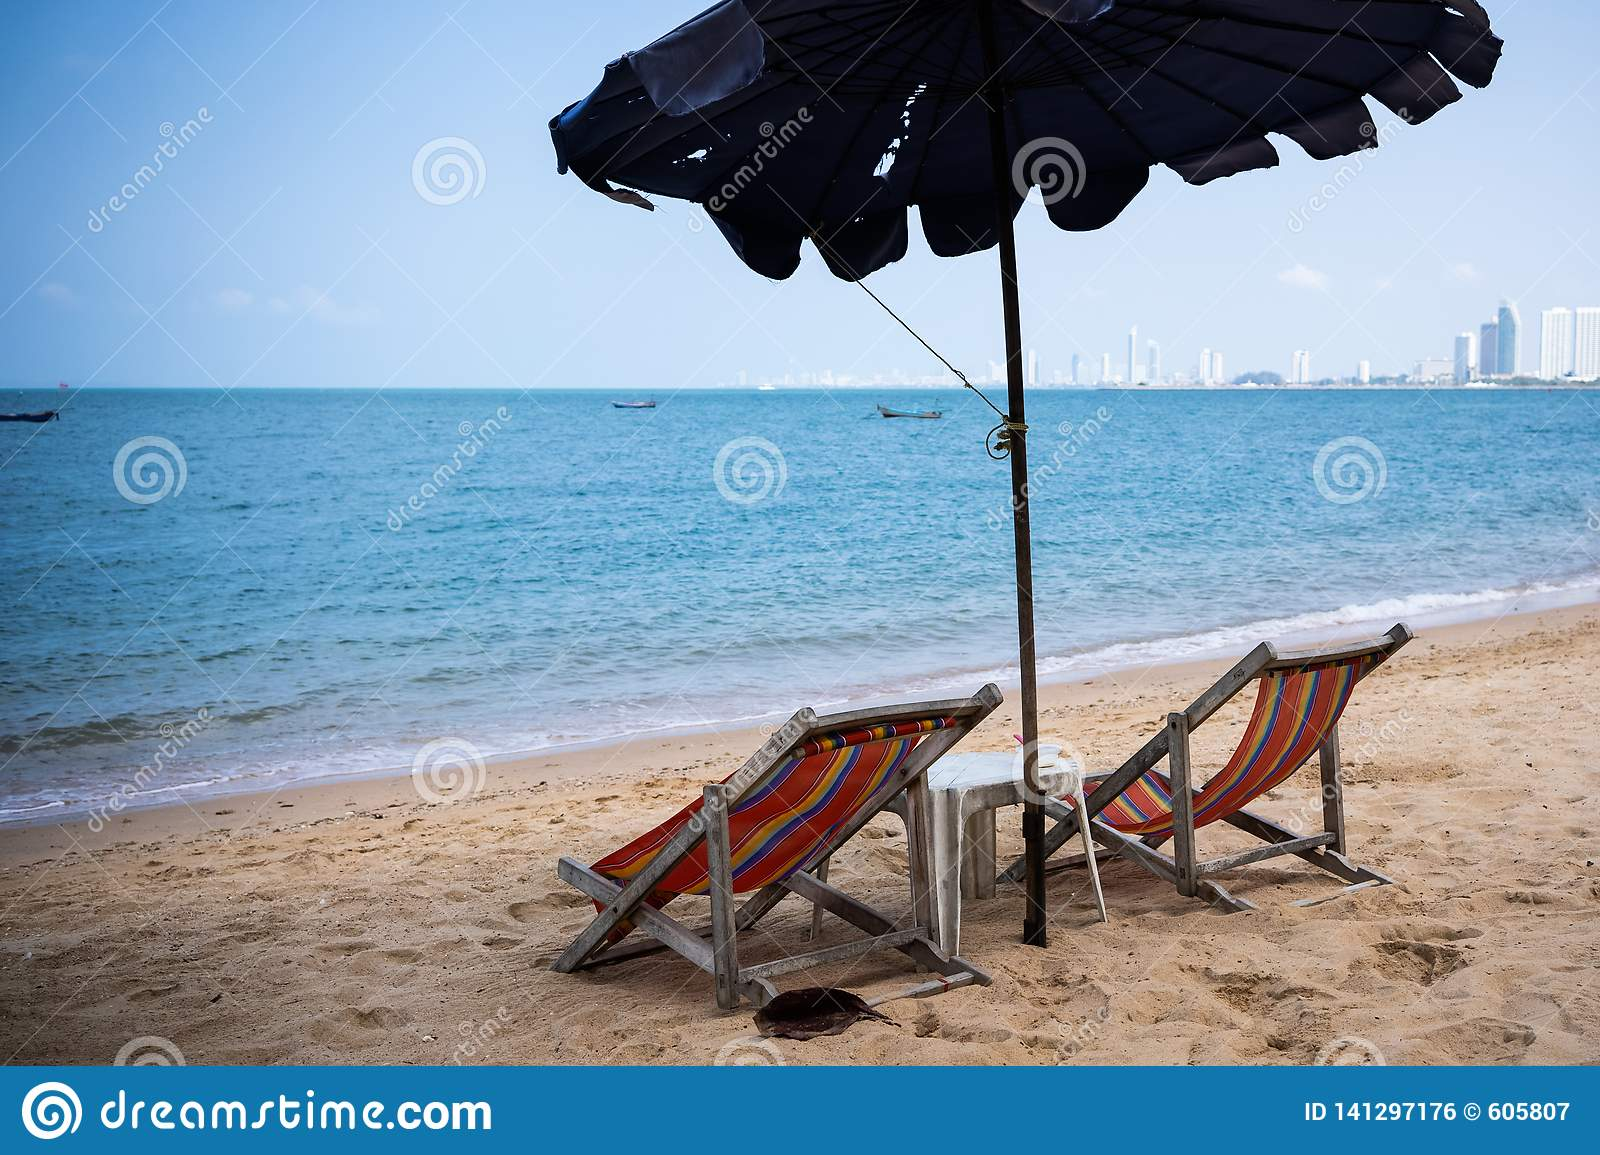 Two loungers and an umbrella on the blue sea on the beach of Pattaya, Thailand. back view.